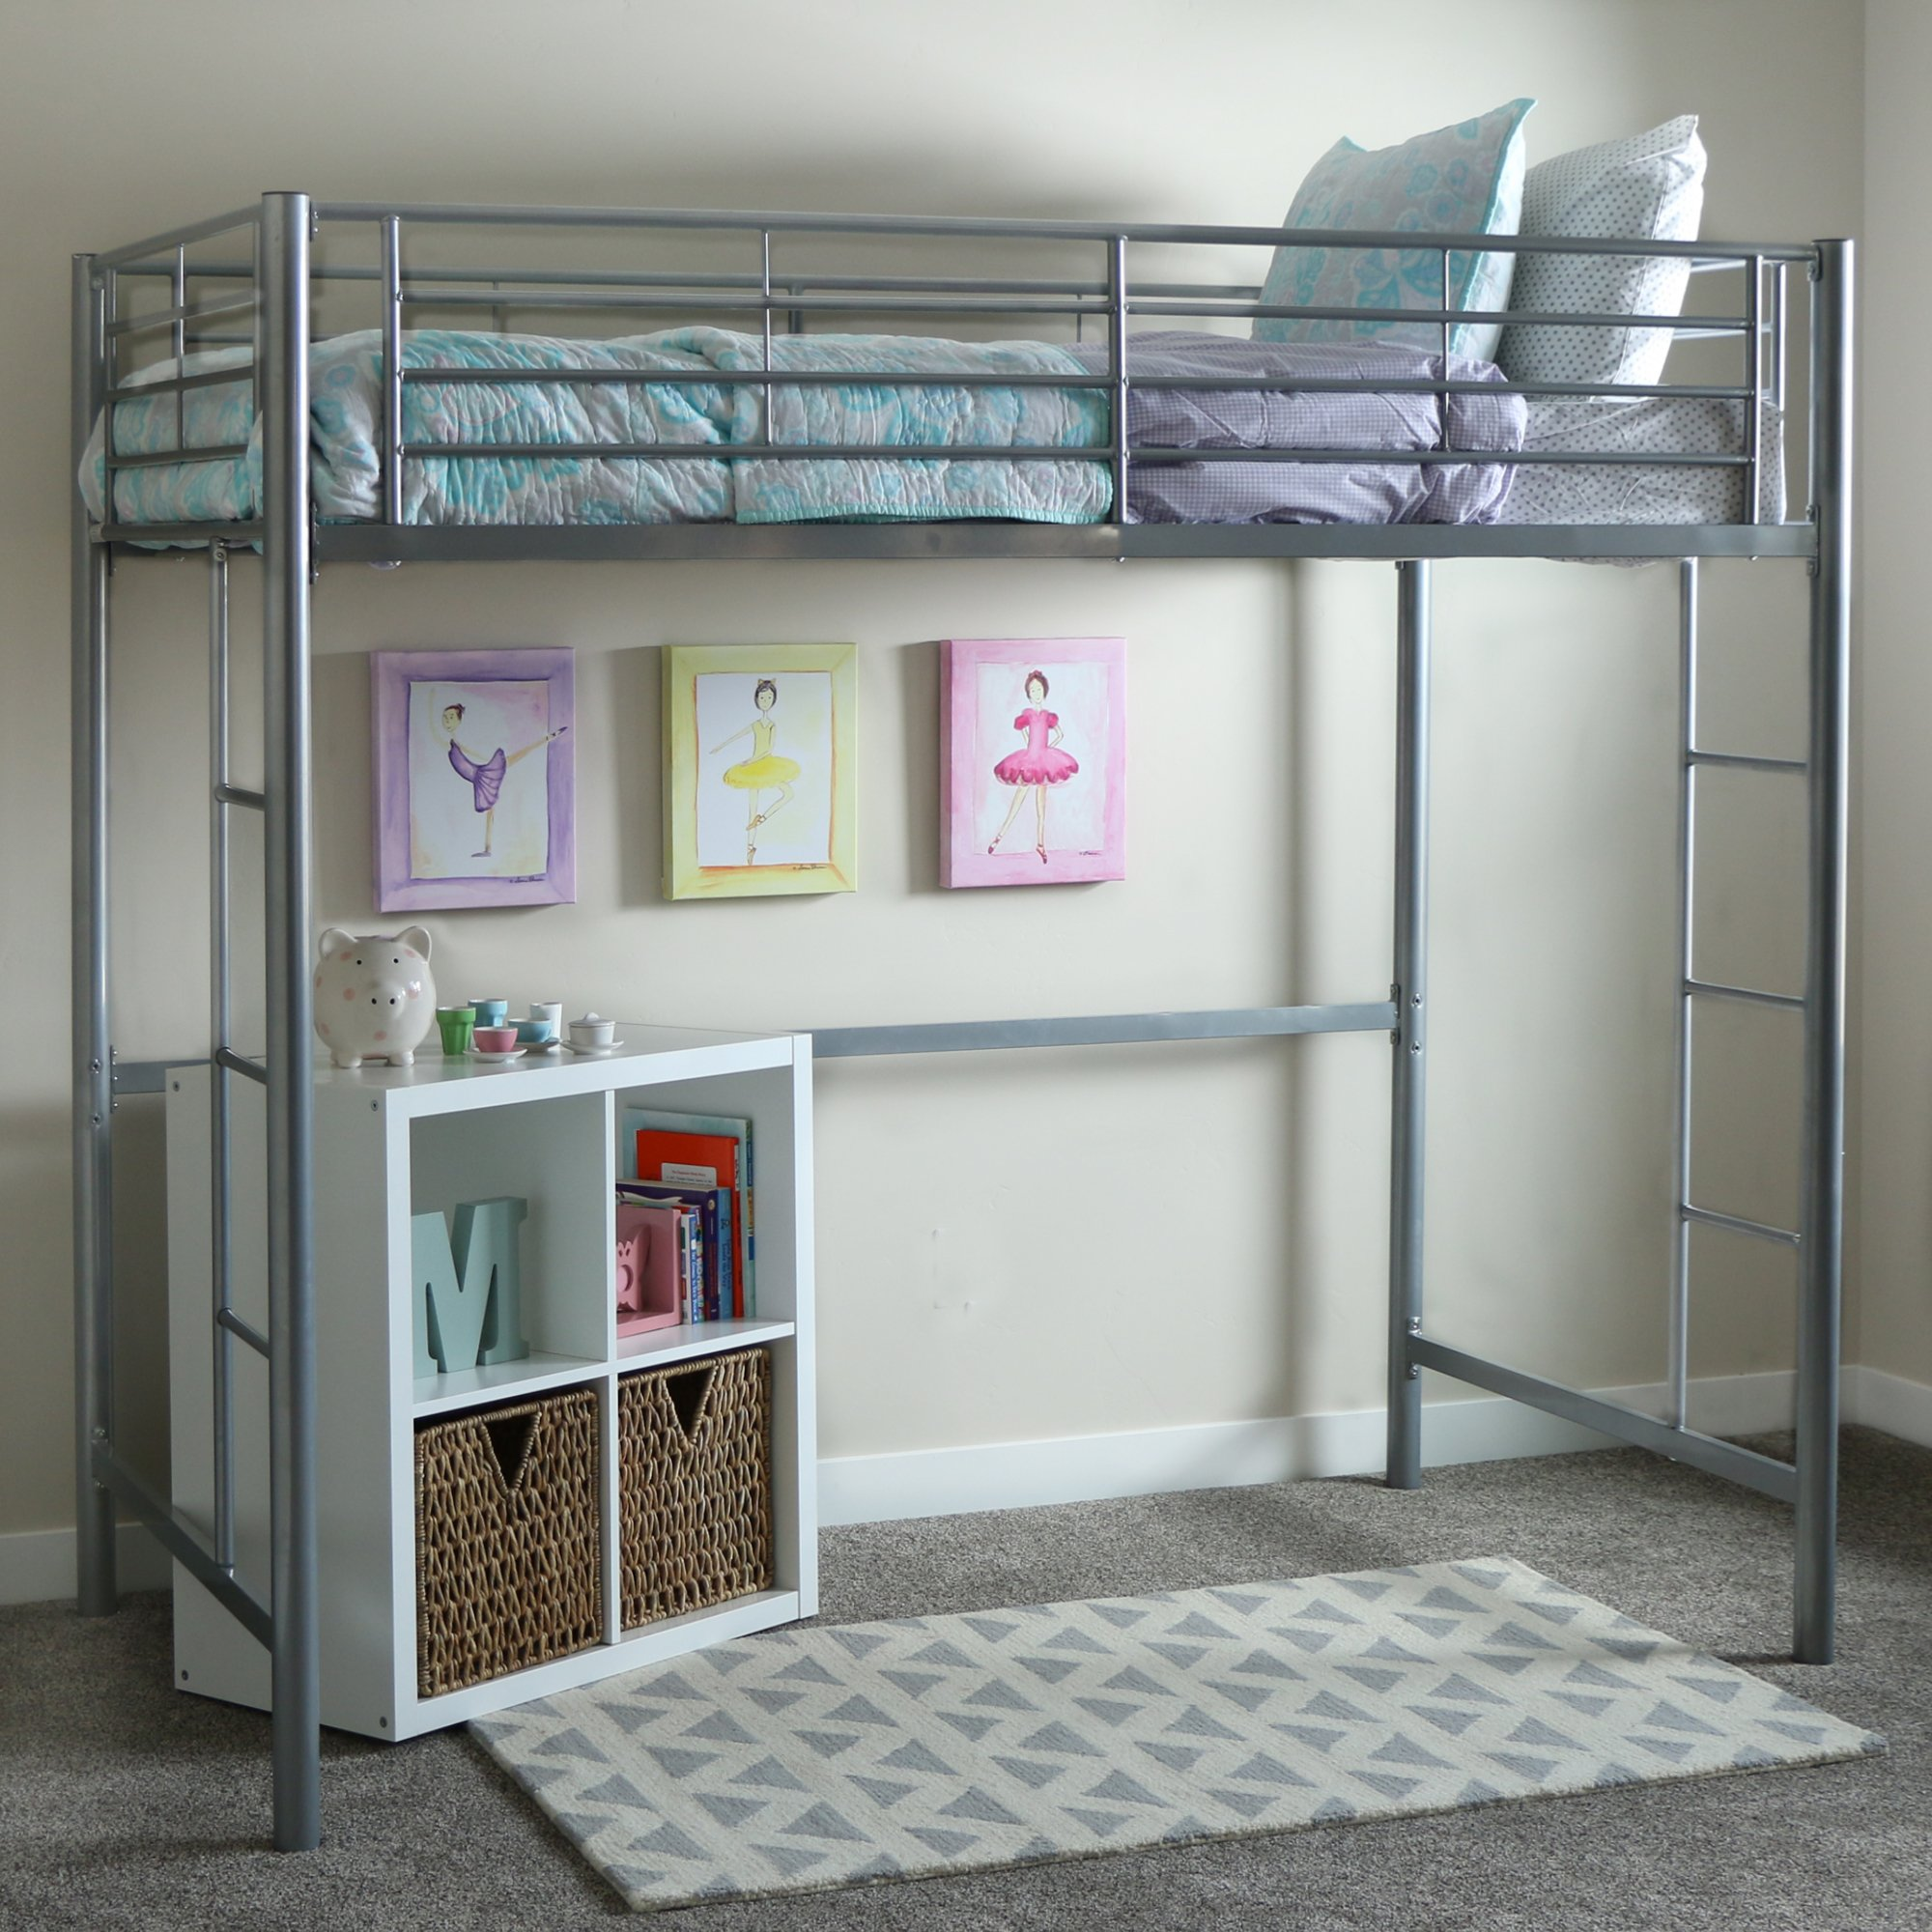 WE Furniture Grey loft bed, 71'' x 42'' x 79'', Silver by WE Furniture